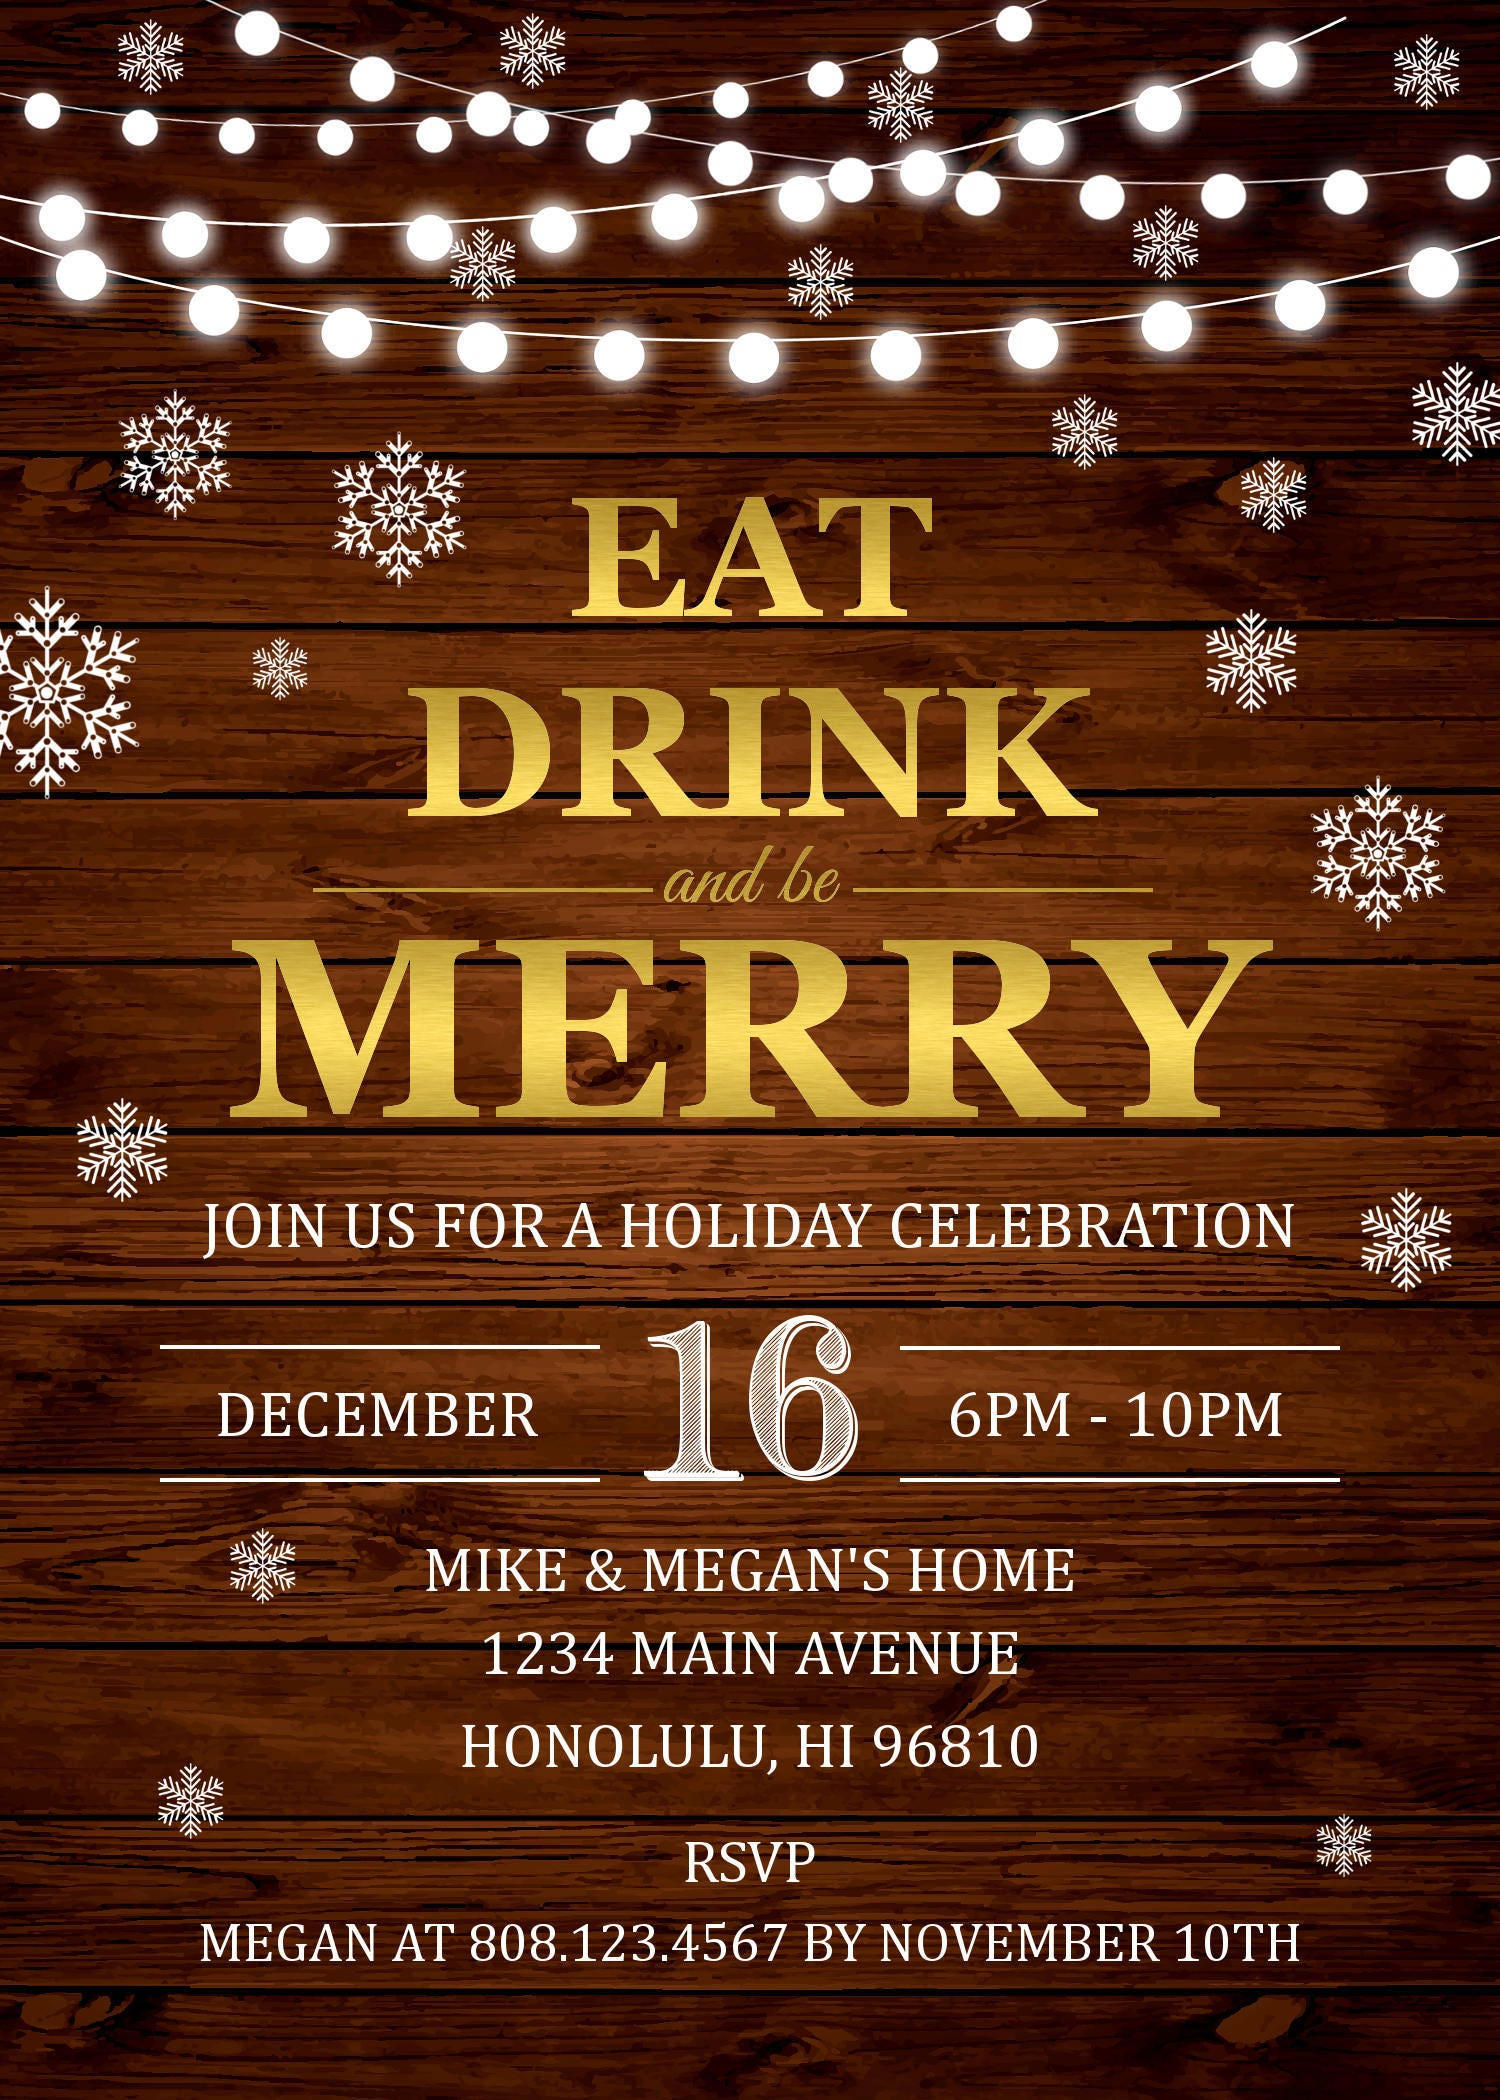 Christmas Party Invitations. Eat Drink and be Merry. Rustic ...